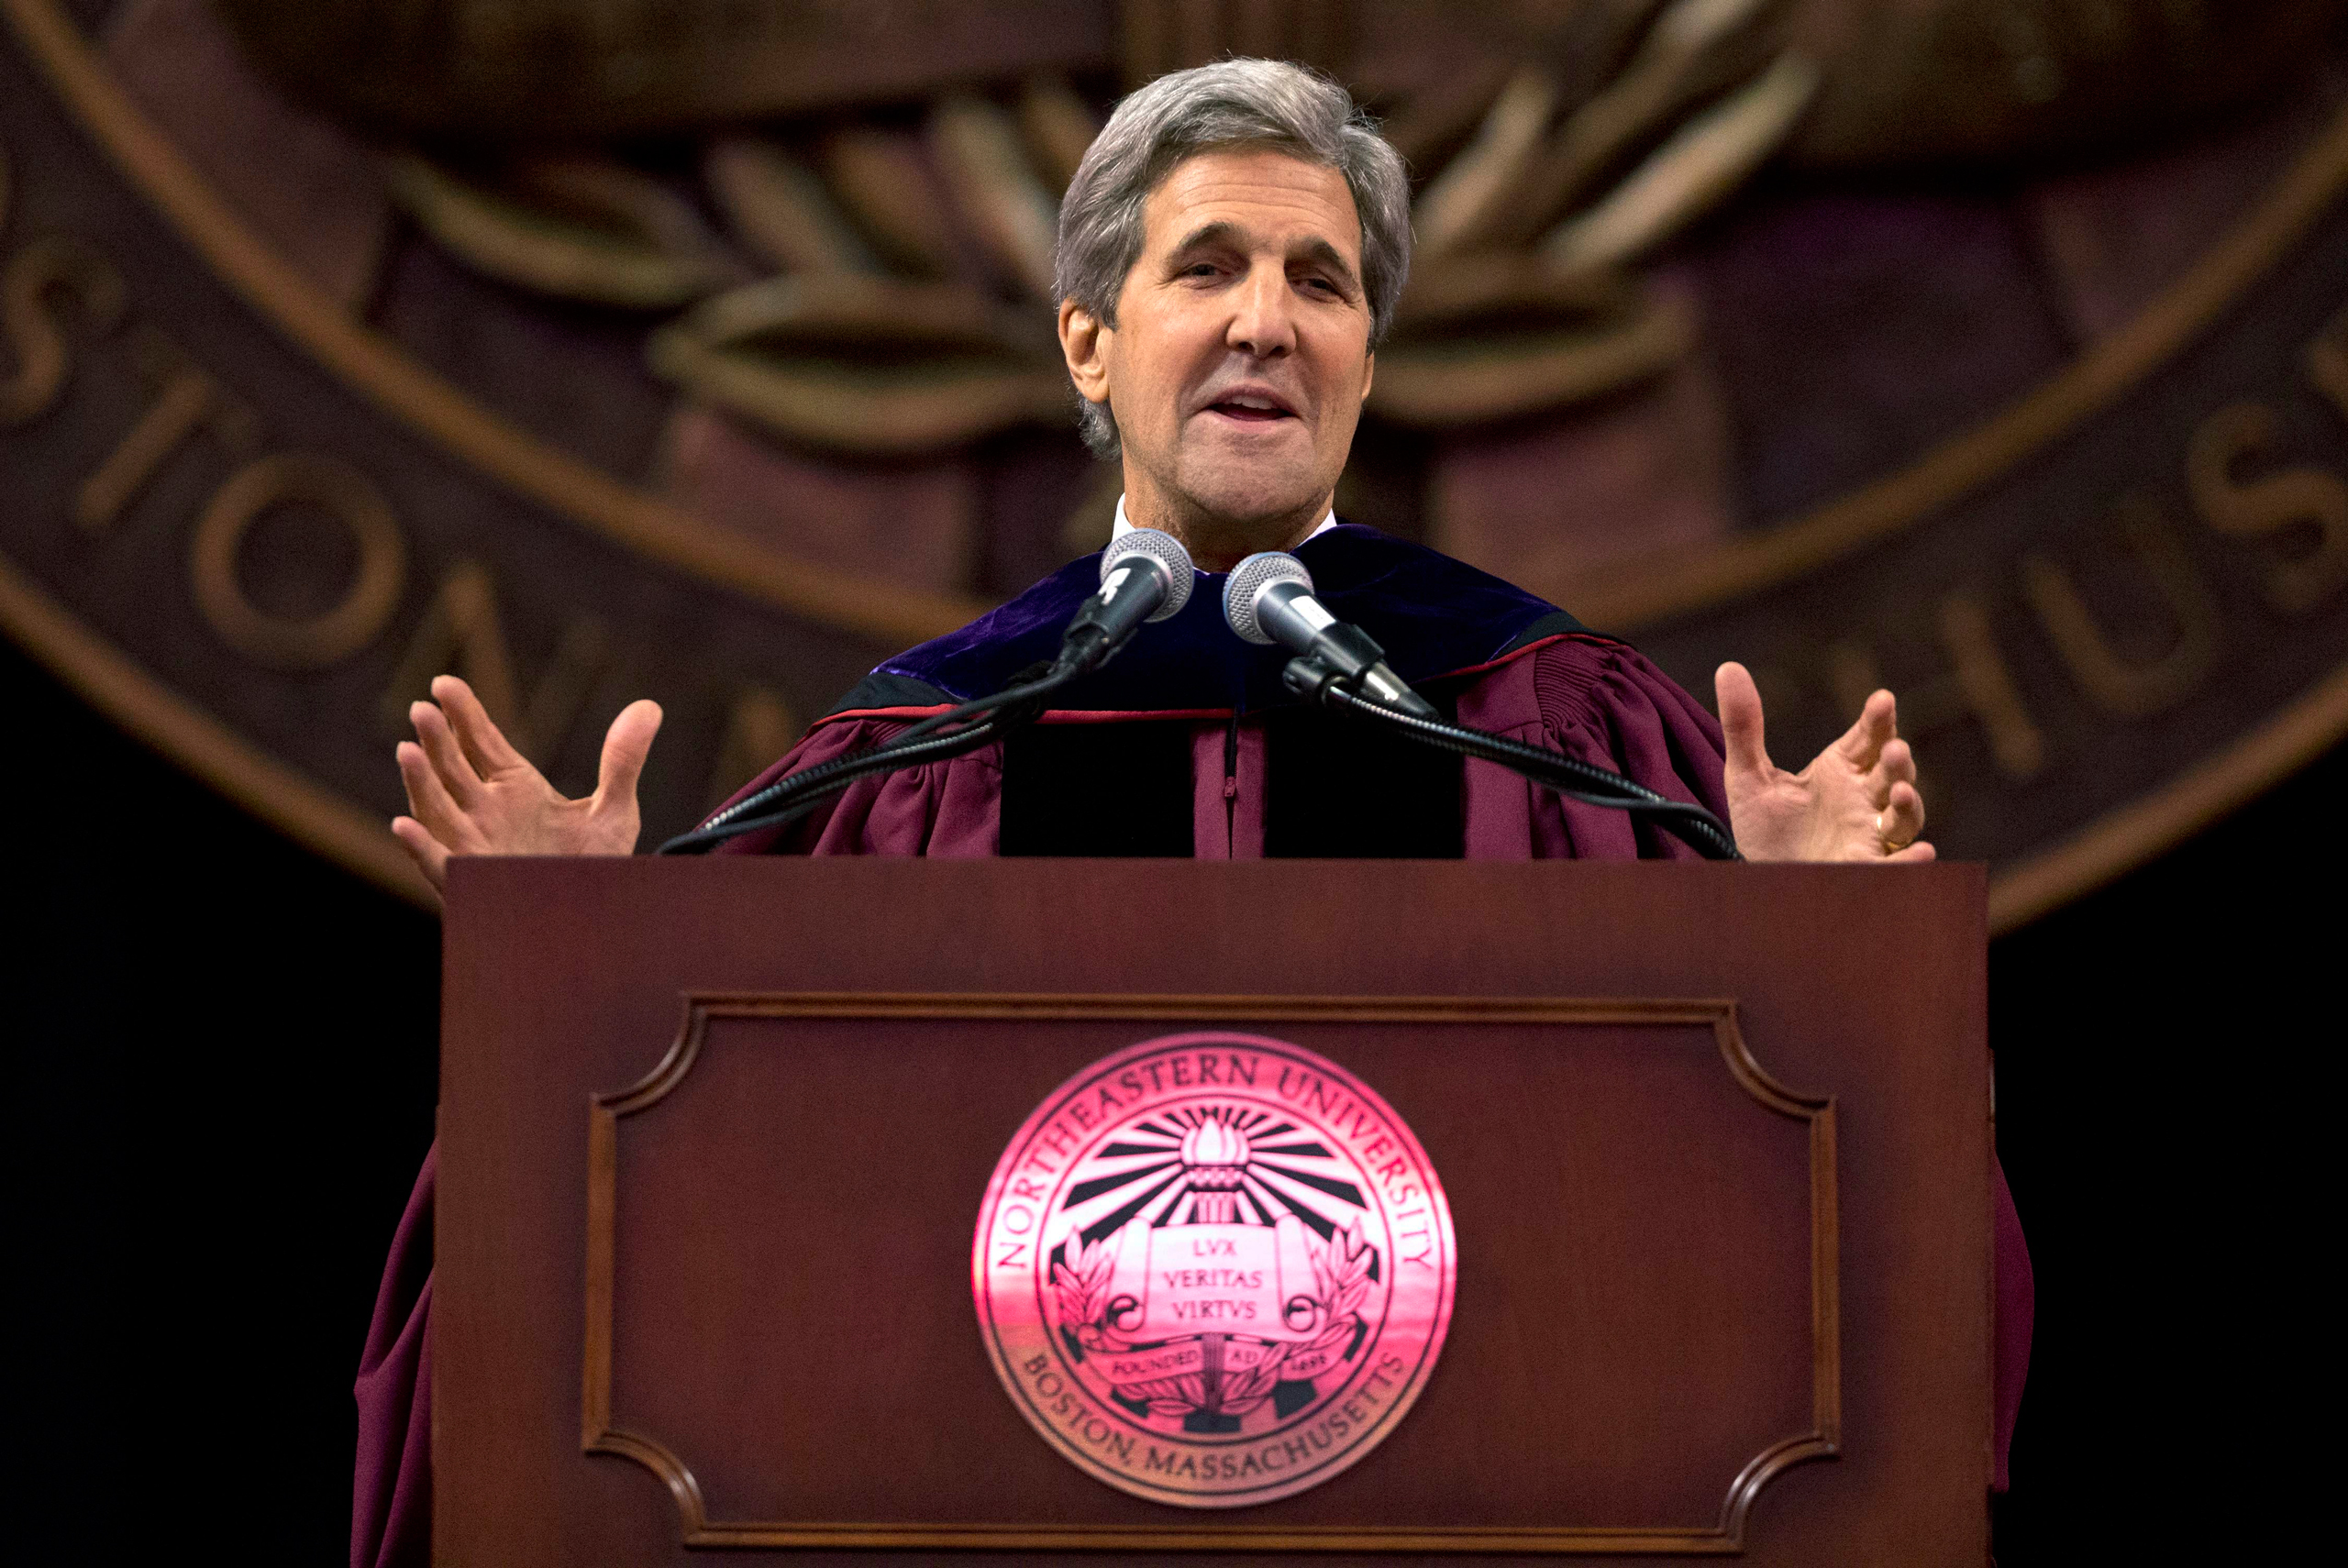 Secretary of State John Kerry gestures while giving the keynote address during Northeastern University's commencement ceremonies in Boston on May 6, 2016.